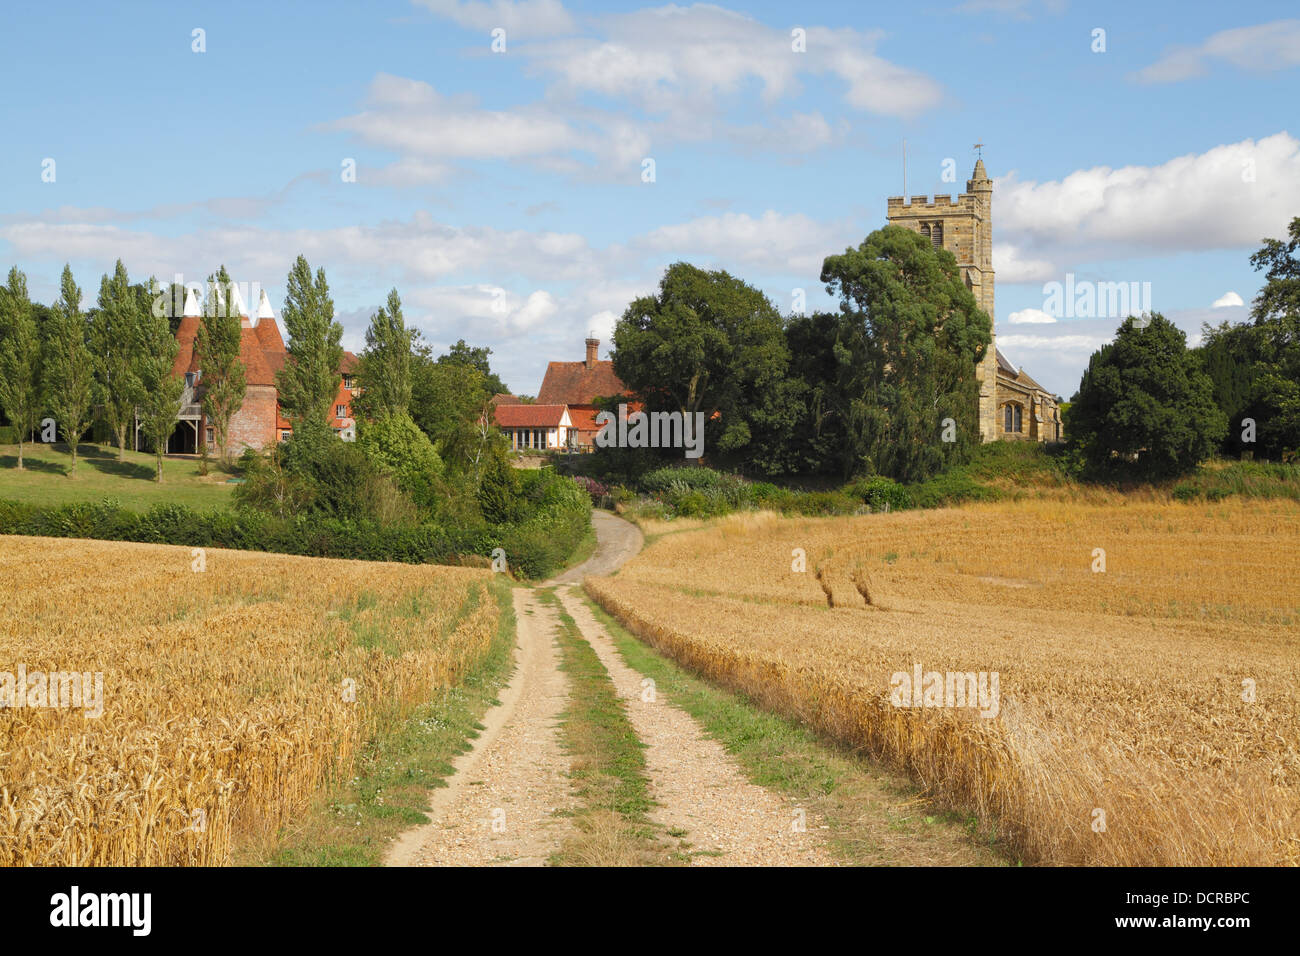 Farm track through wheat fields at harvest time, oast house and St Margaret's church, Horsmonden Kent England - Stock Image